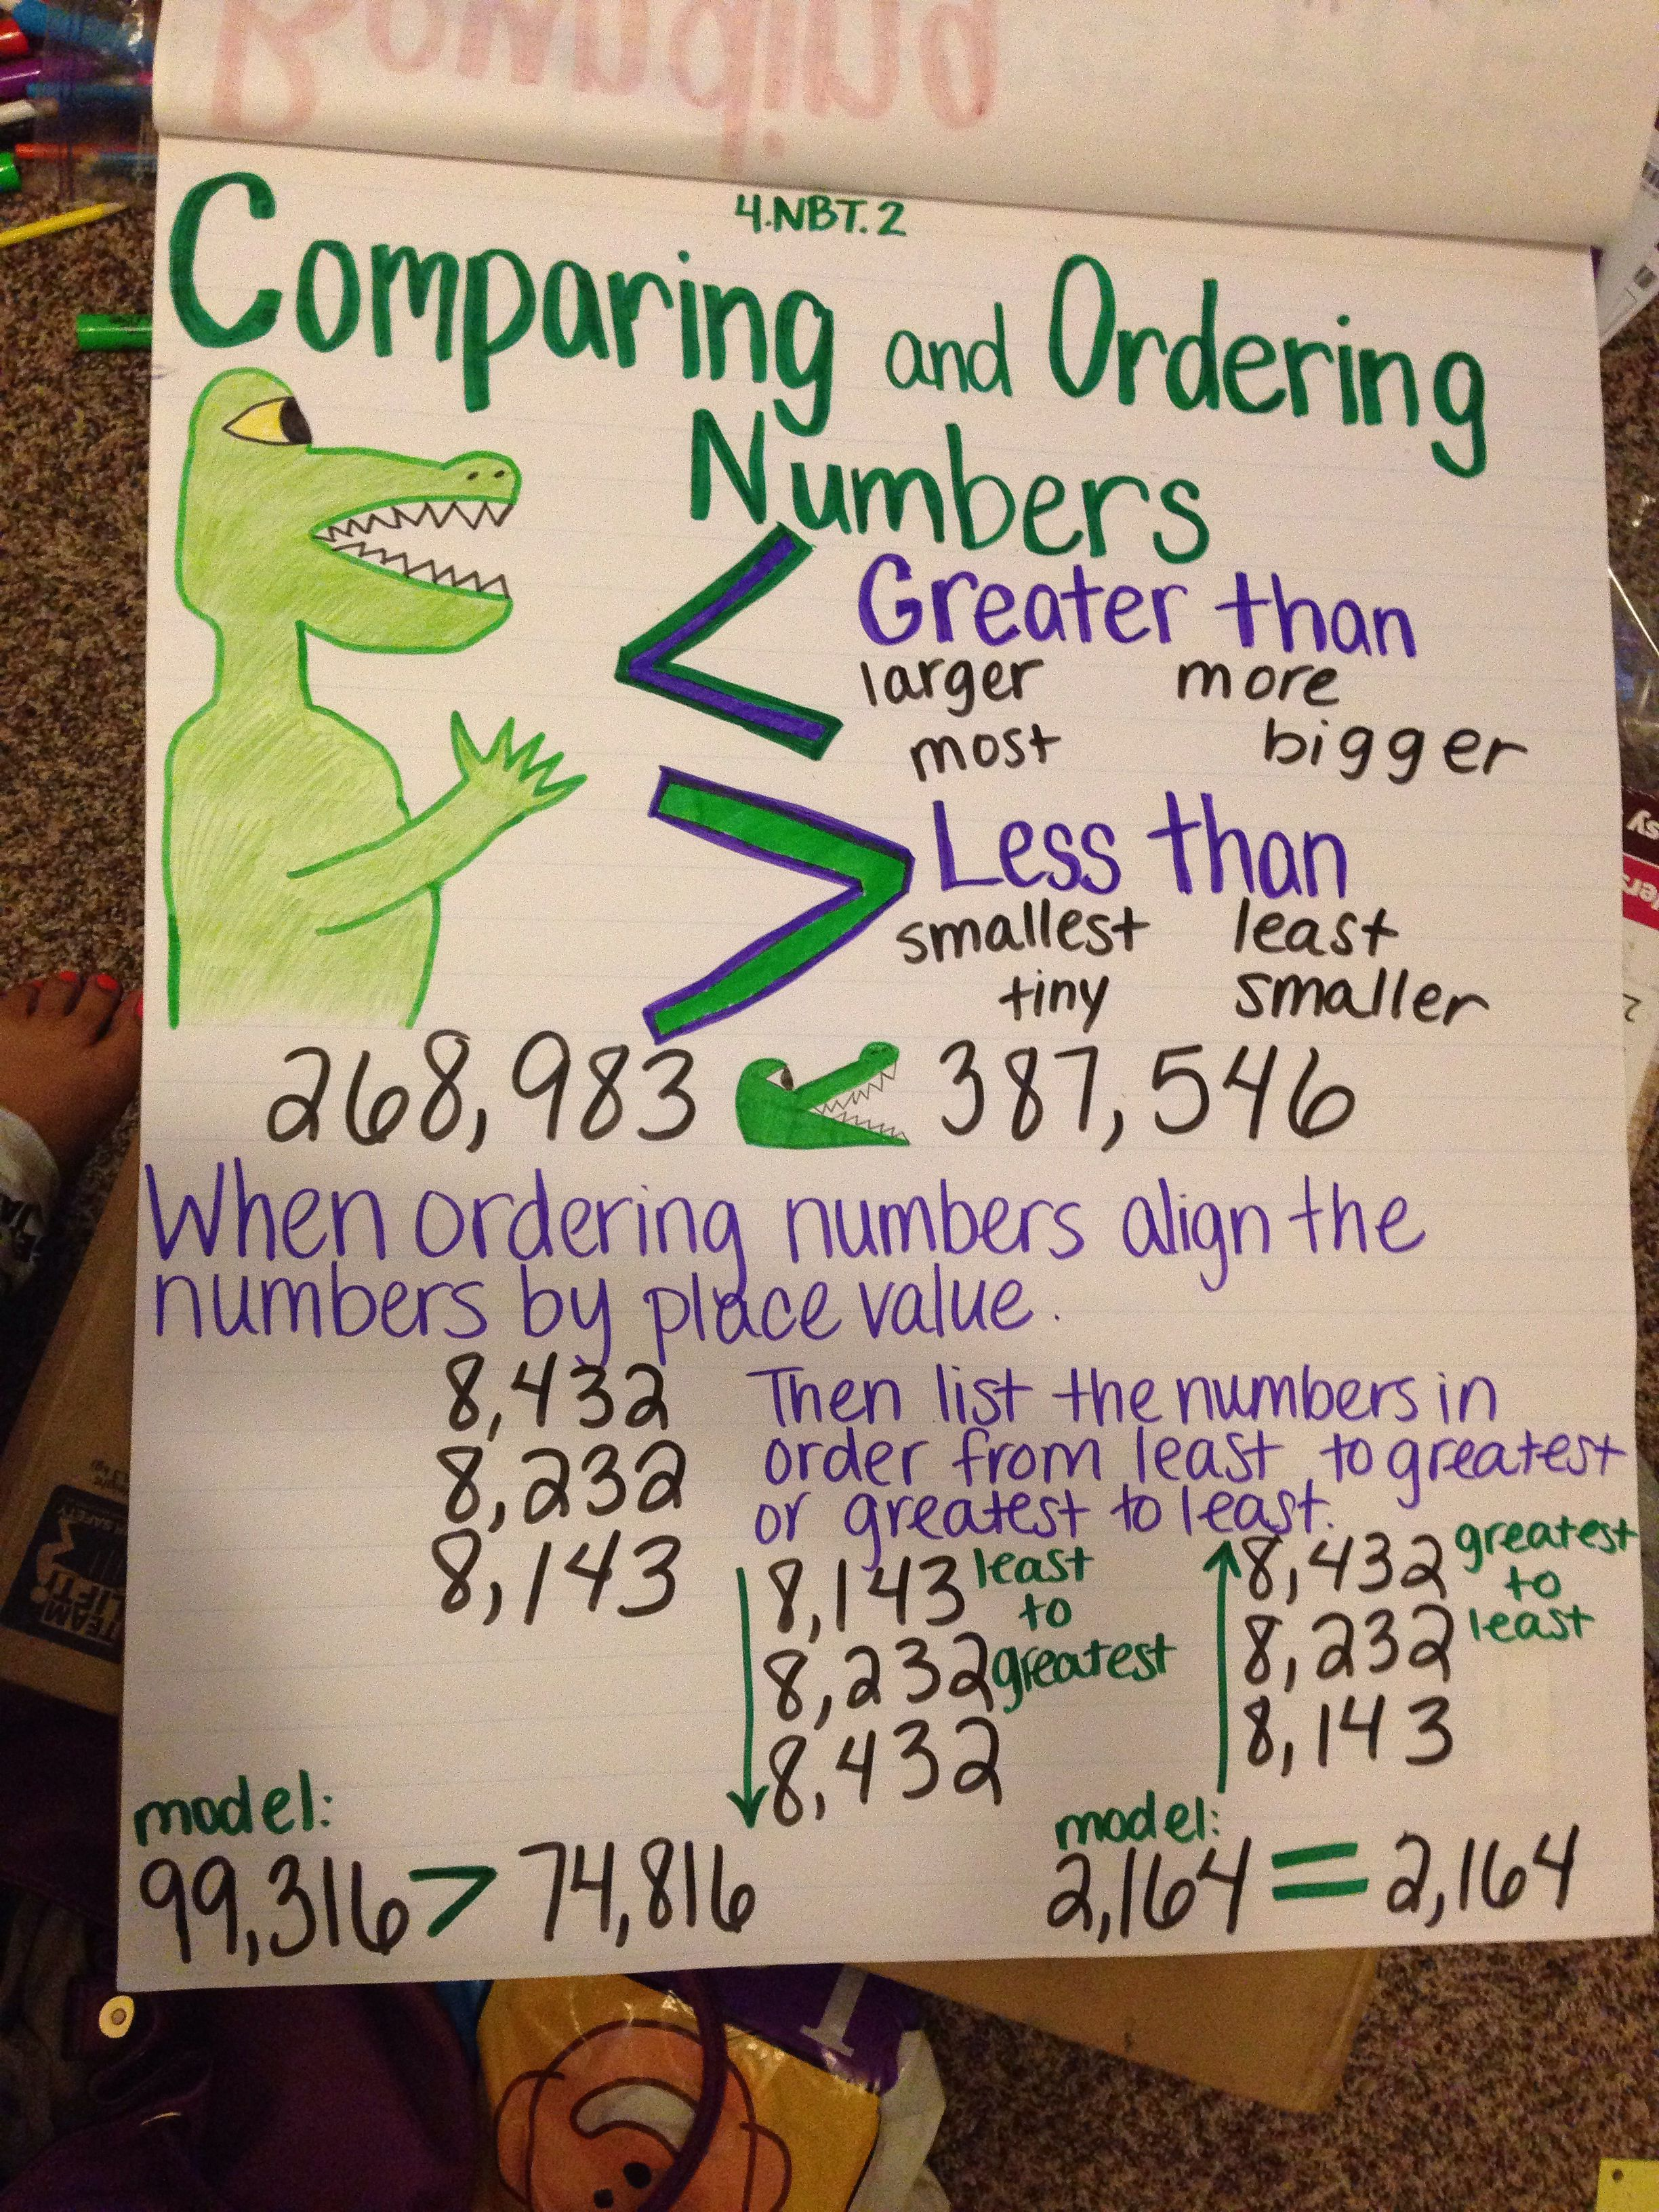 Comparing And Ordering Numbers Anchor Chart 4 Nbt 3